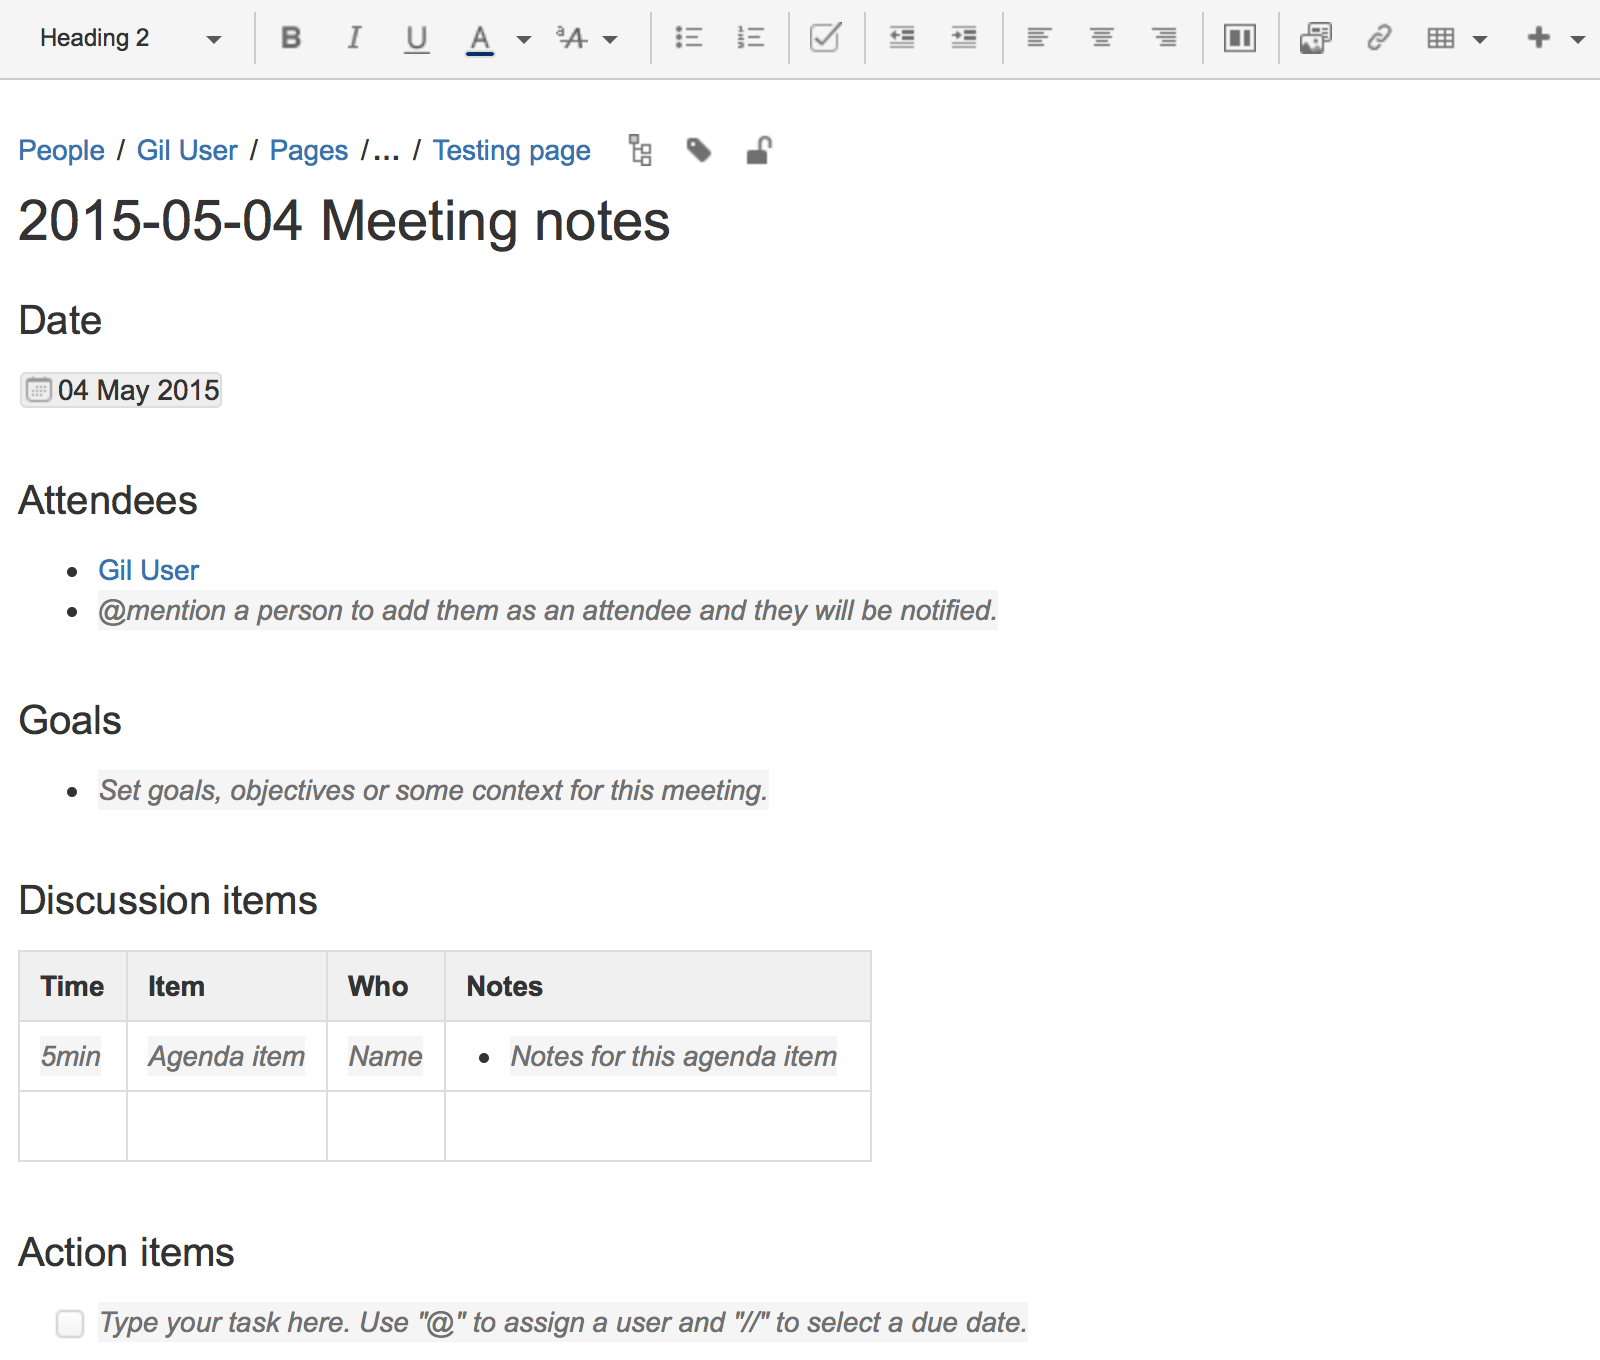 Meeting Notes Blueprint - Atlassian Documentation